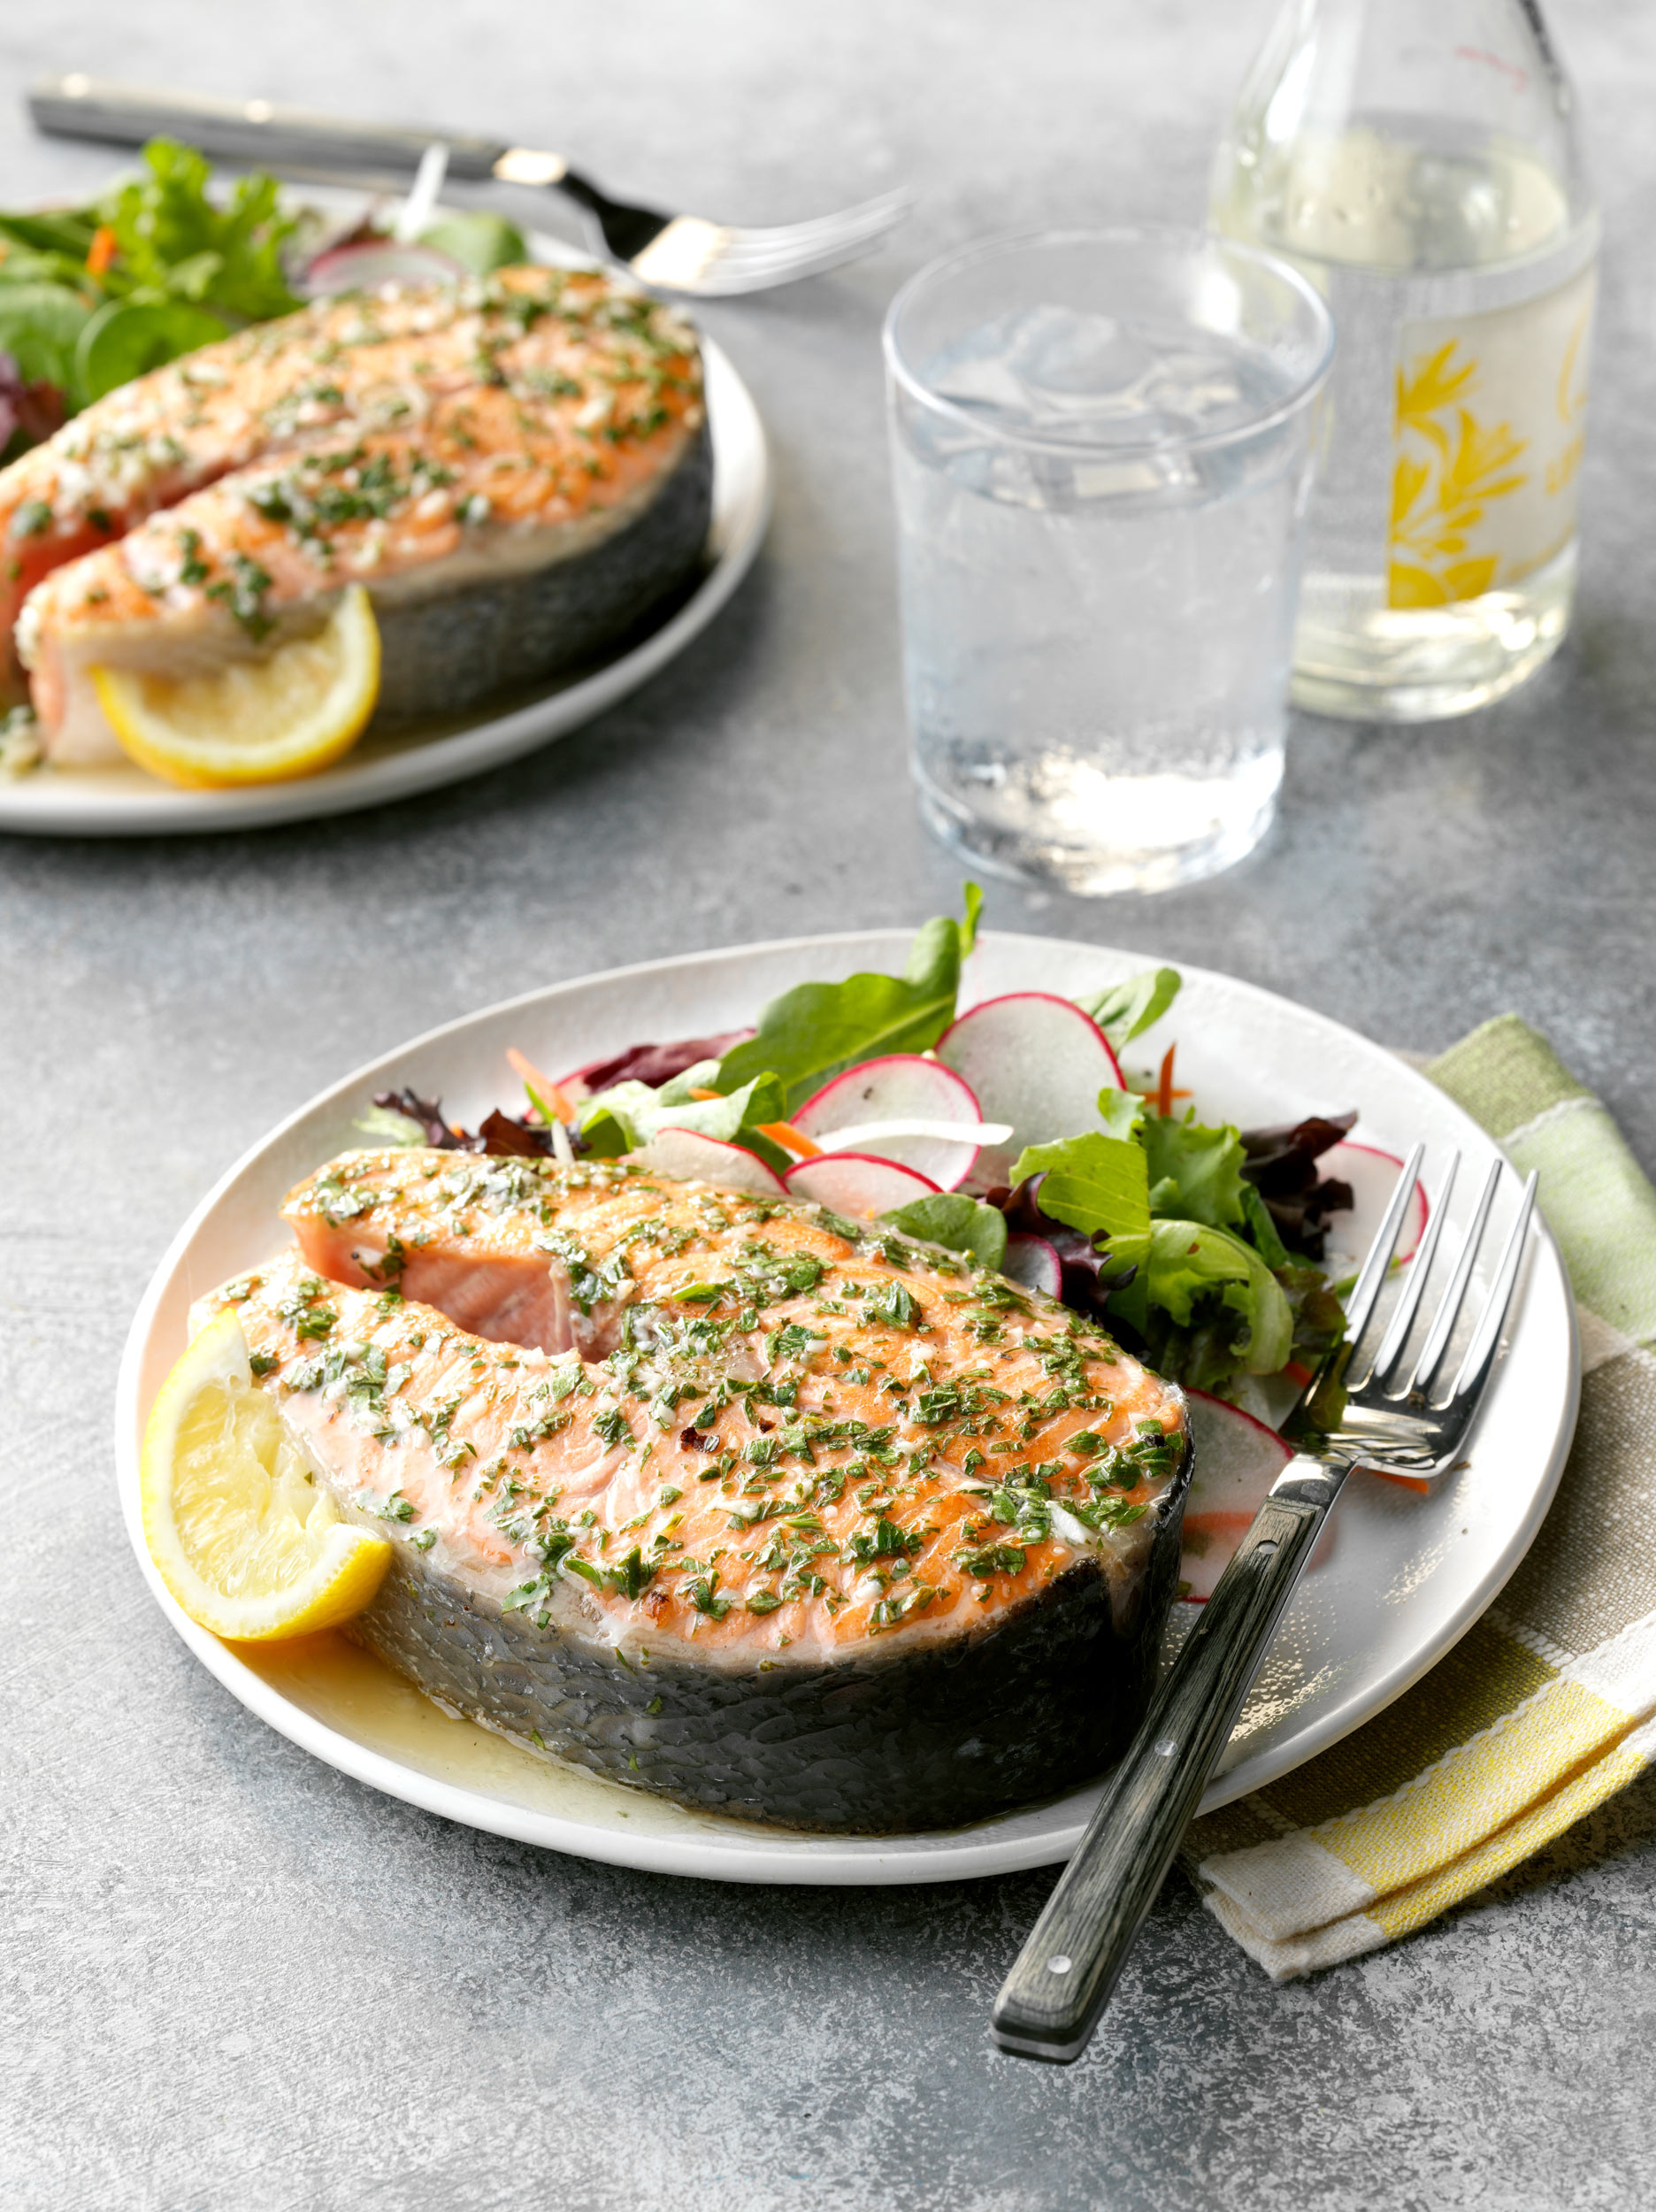 Lemon Garlic Salmon Steaks photo by Chris Kessler Photography.  Chris Kessler is a freelance Photographer based in Milwaukee Wisconsin. Specializing in Food photography and portraiture.